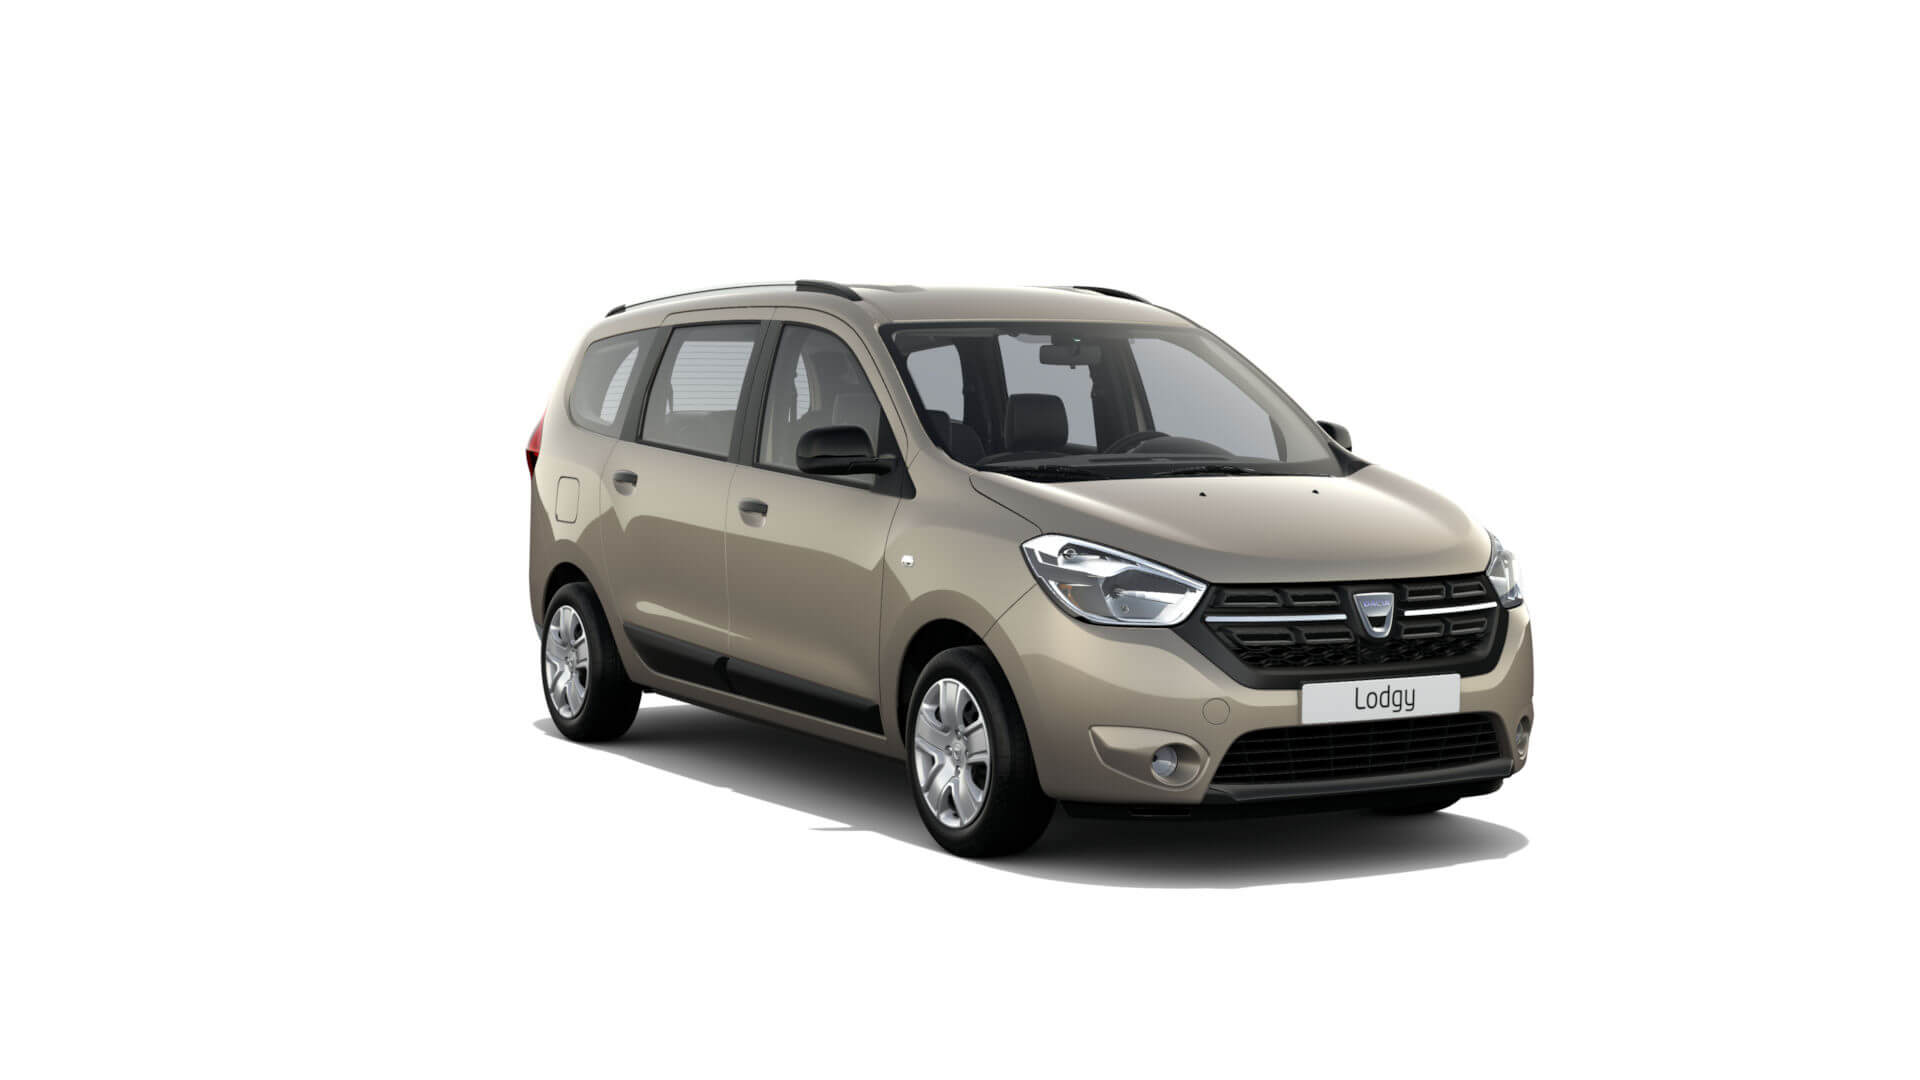 Automodell beige - Dacia Lodgy - Renault Ahrens Hannover